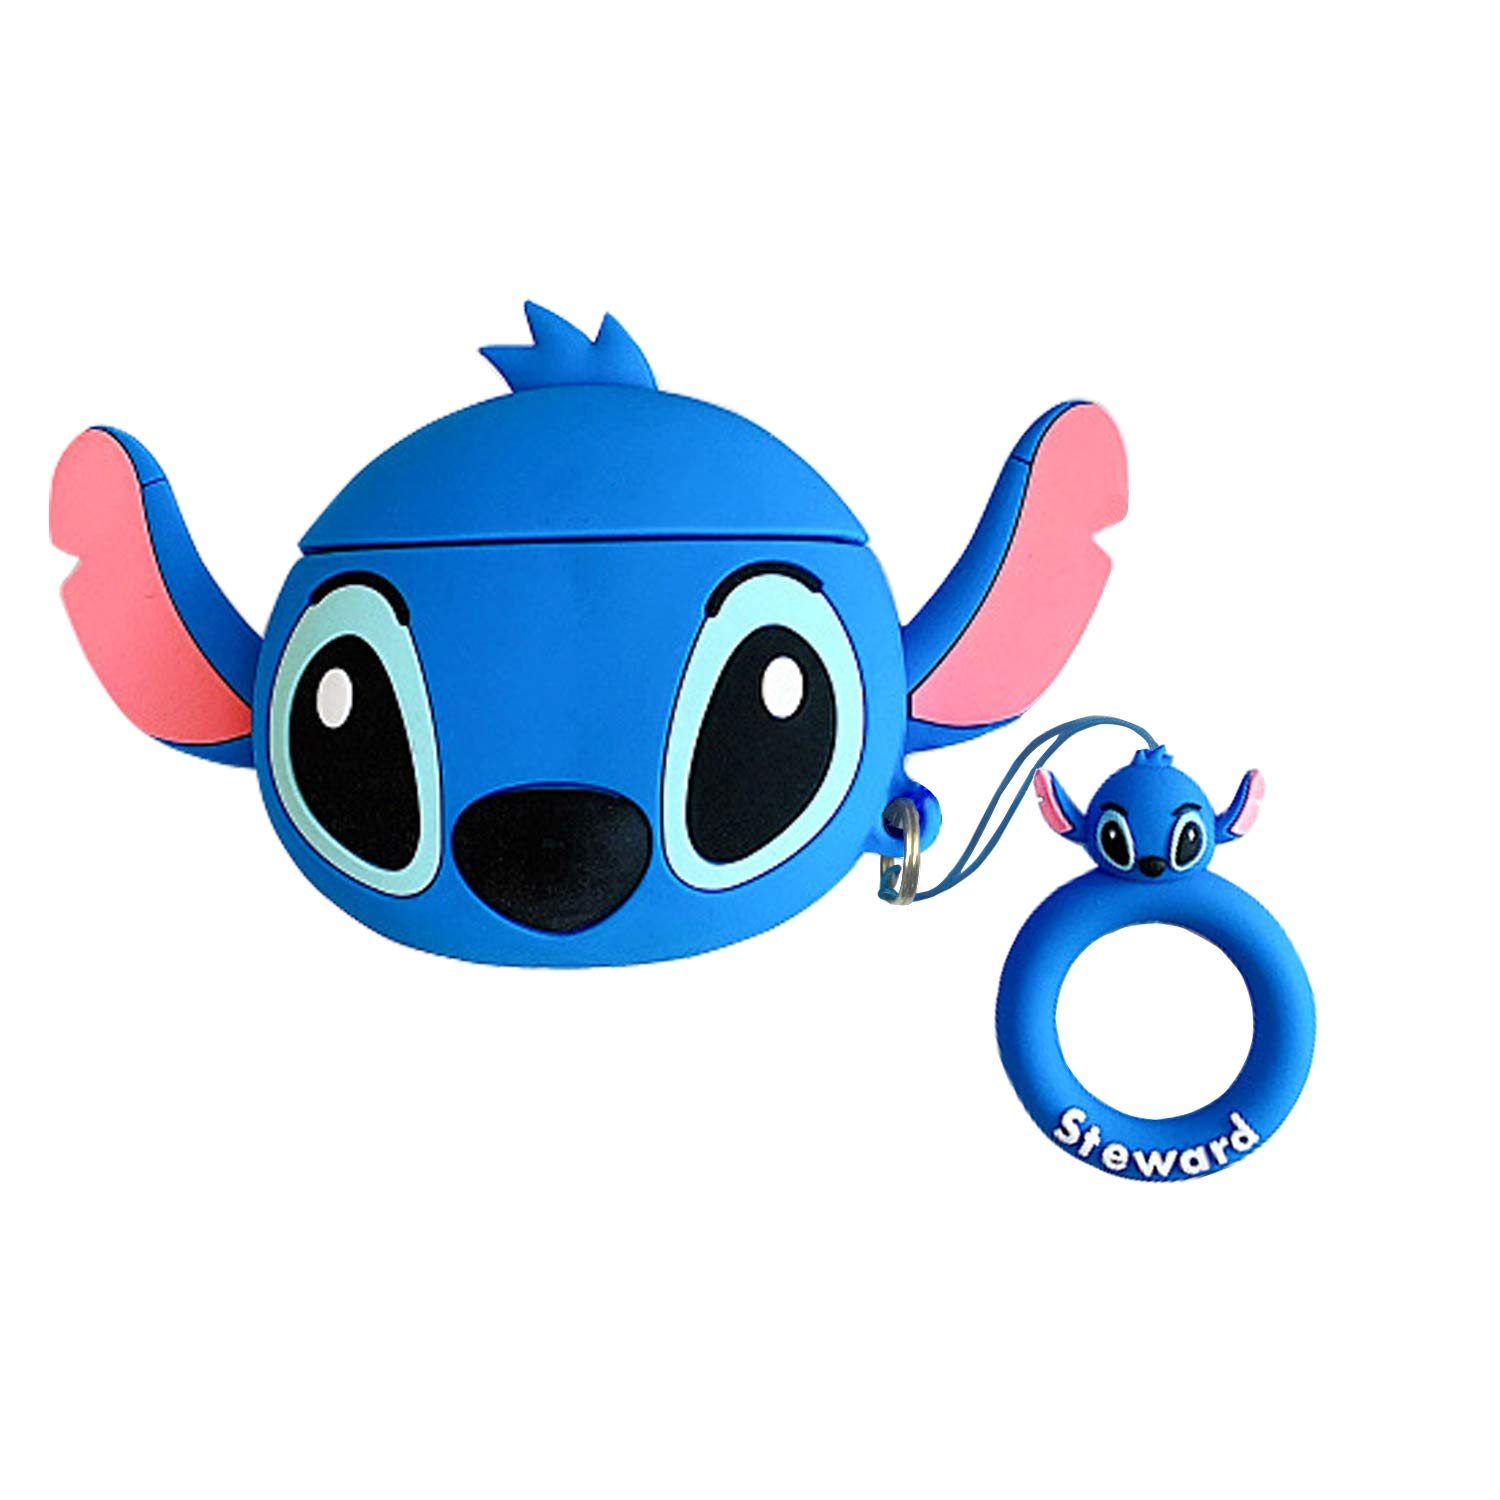 LitoDream Compatible with Airpods 1&2 Case,Cute Cartoon Character Stitch Silicone Air pod Funny Cover Kawaii Fun Keychain Skin Fashion Cases for Daughter Girls Kids Airpods (Blue)